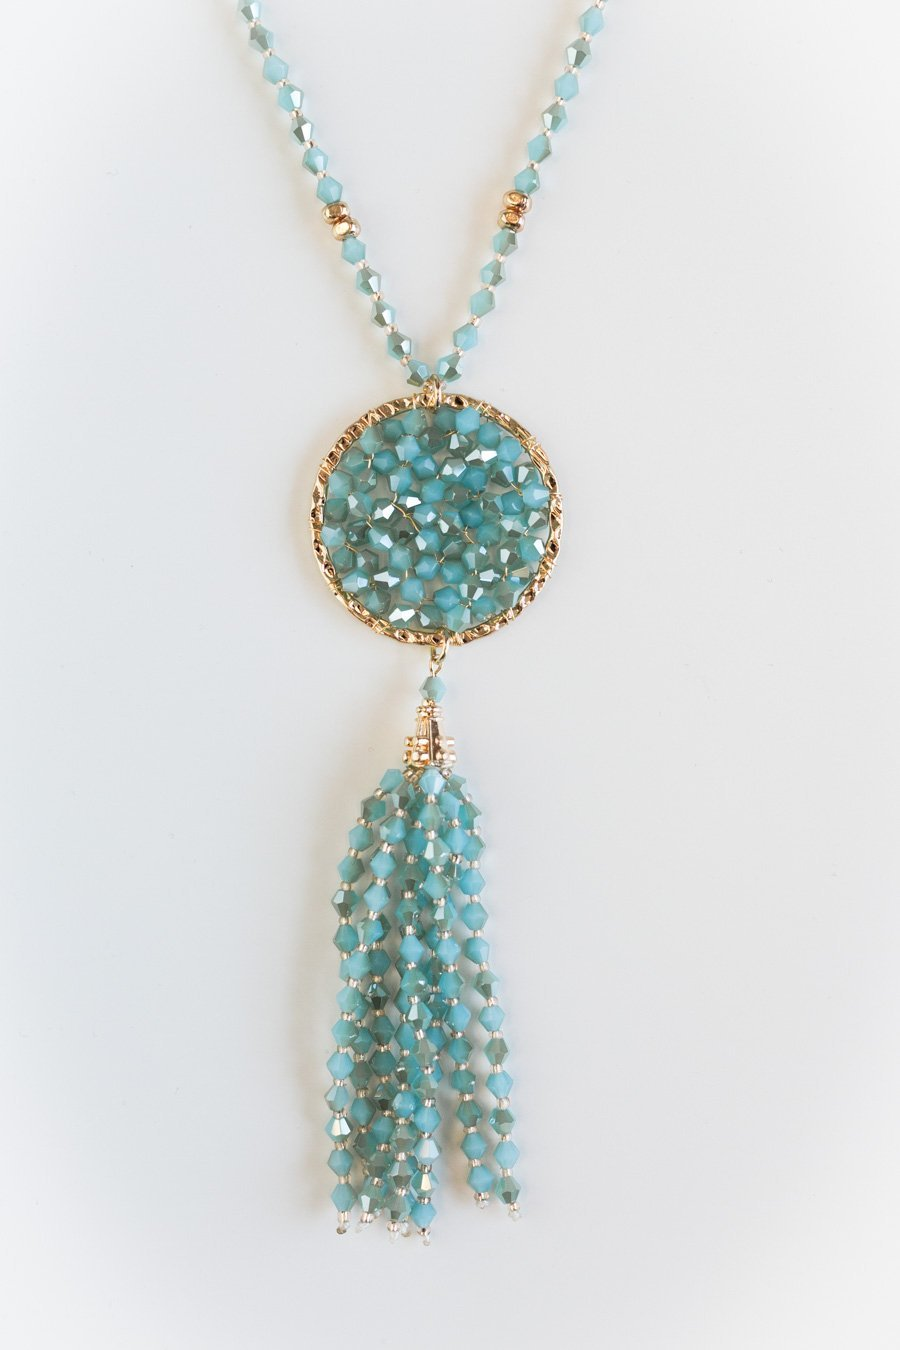 The Beaded Bliss Pendant in Blue